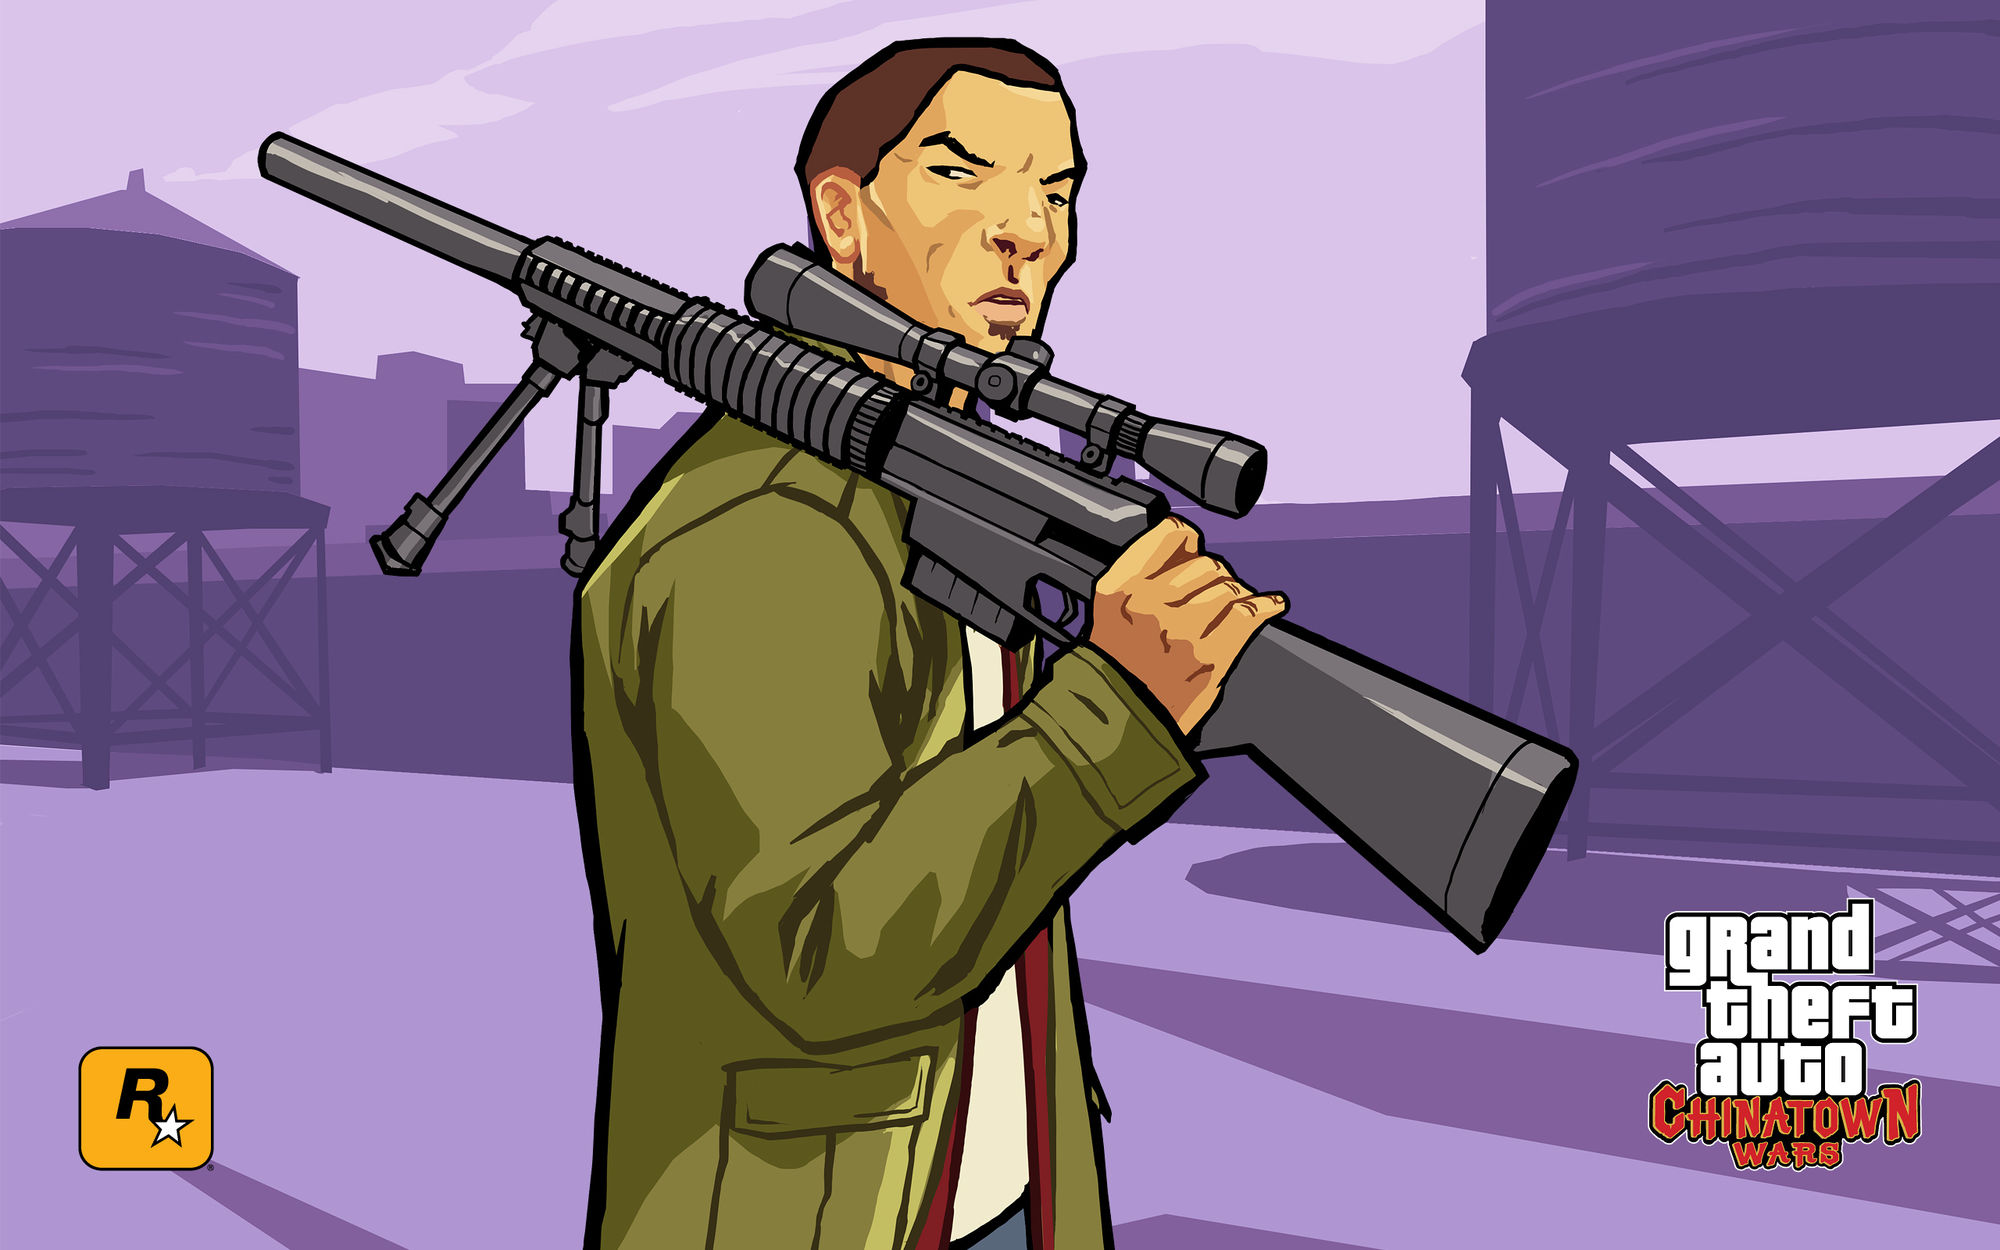 Grand Theft Auto: Chinatown Wars Pics, Video Game Collection